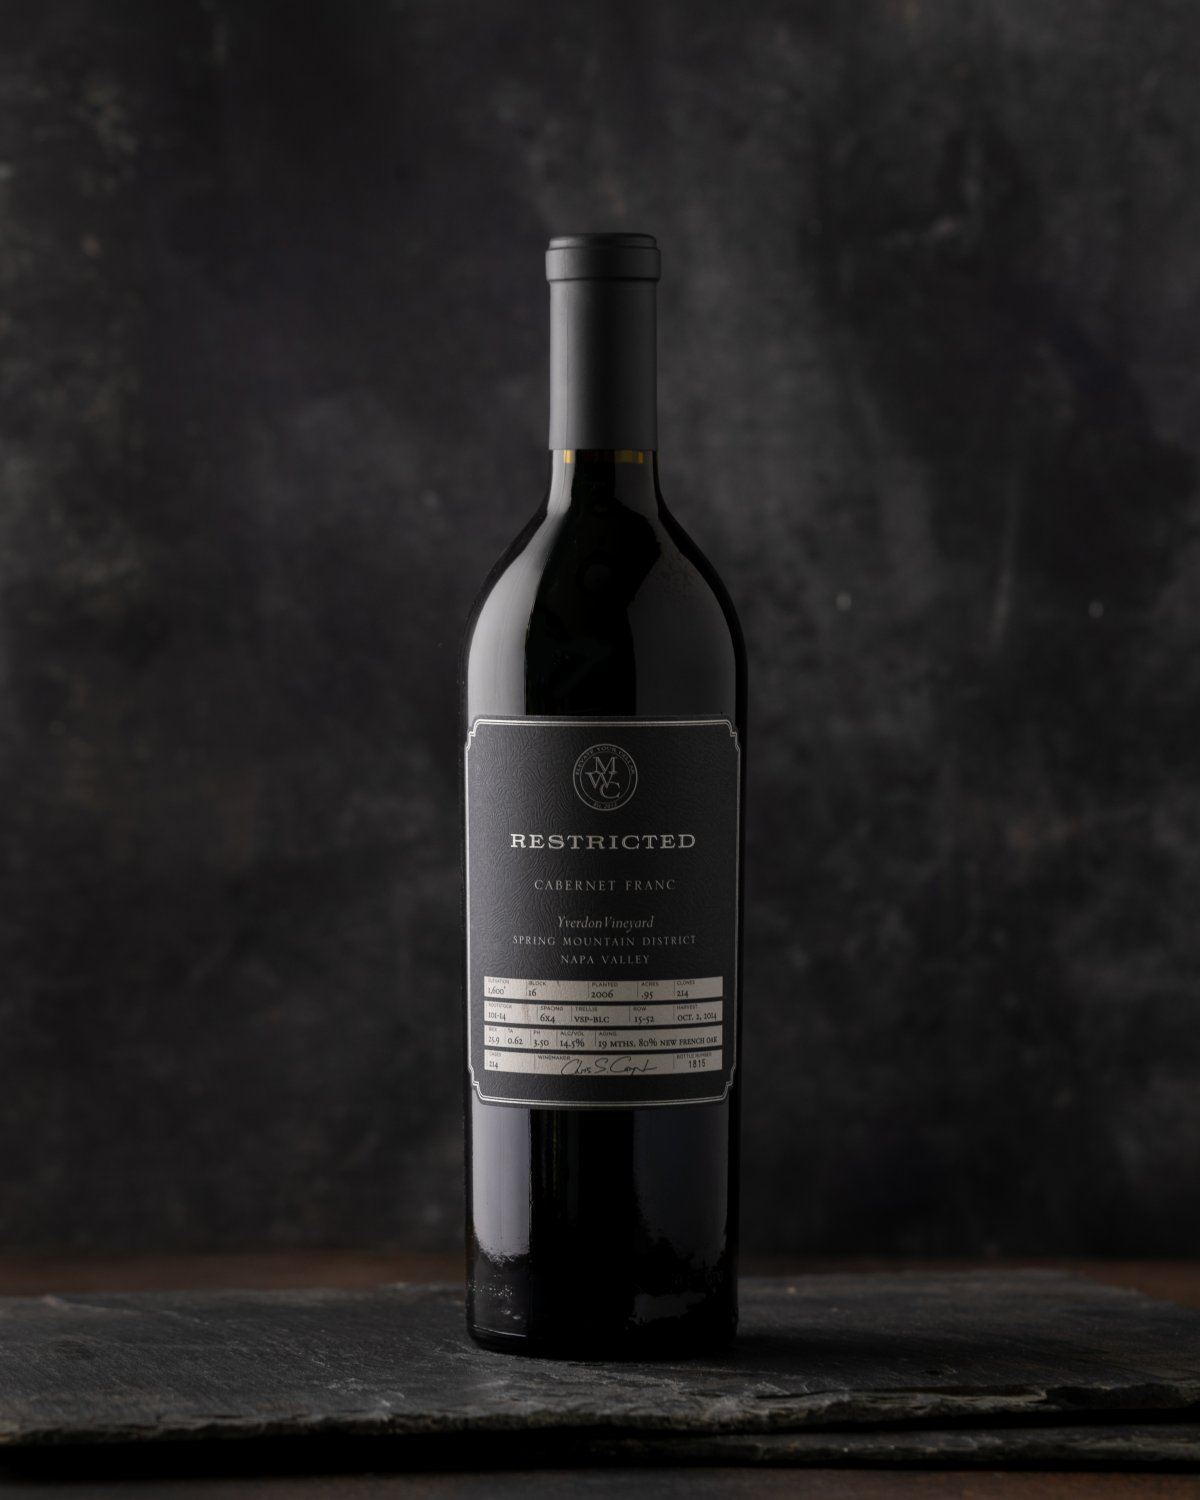 2012 Restricted SPM Cabernet Franc